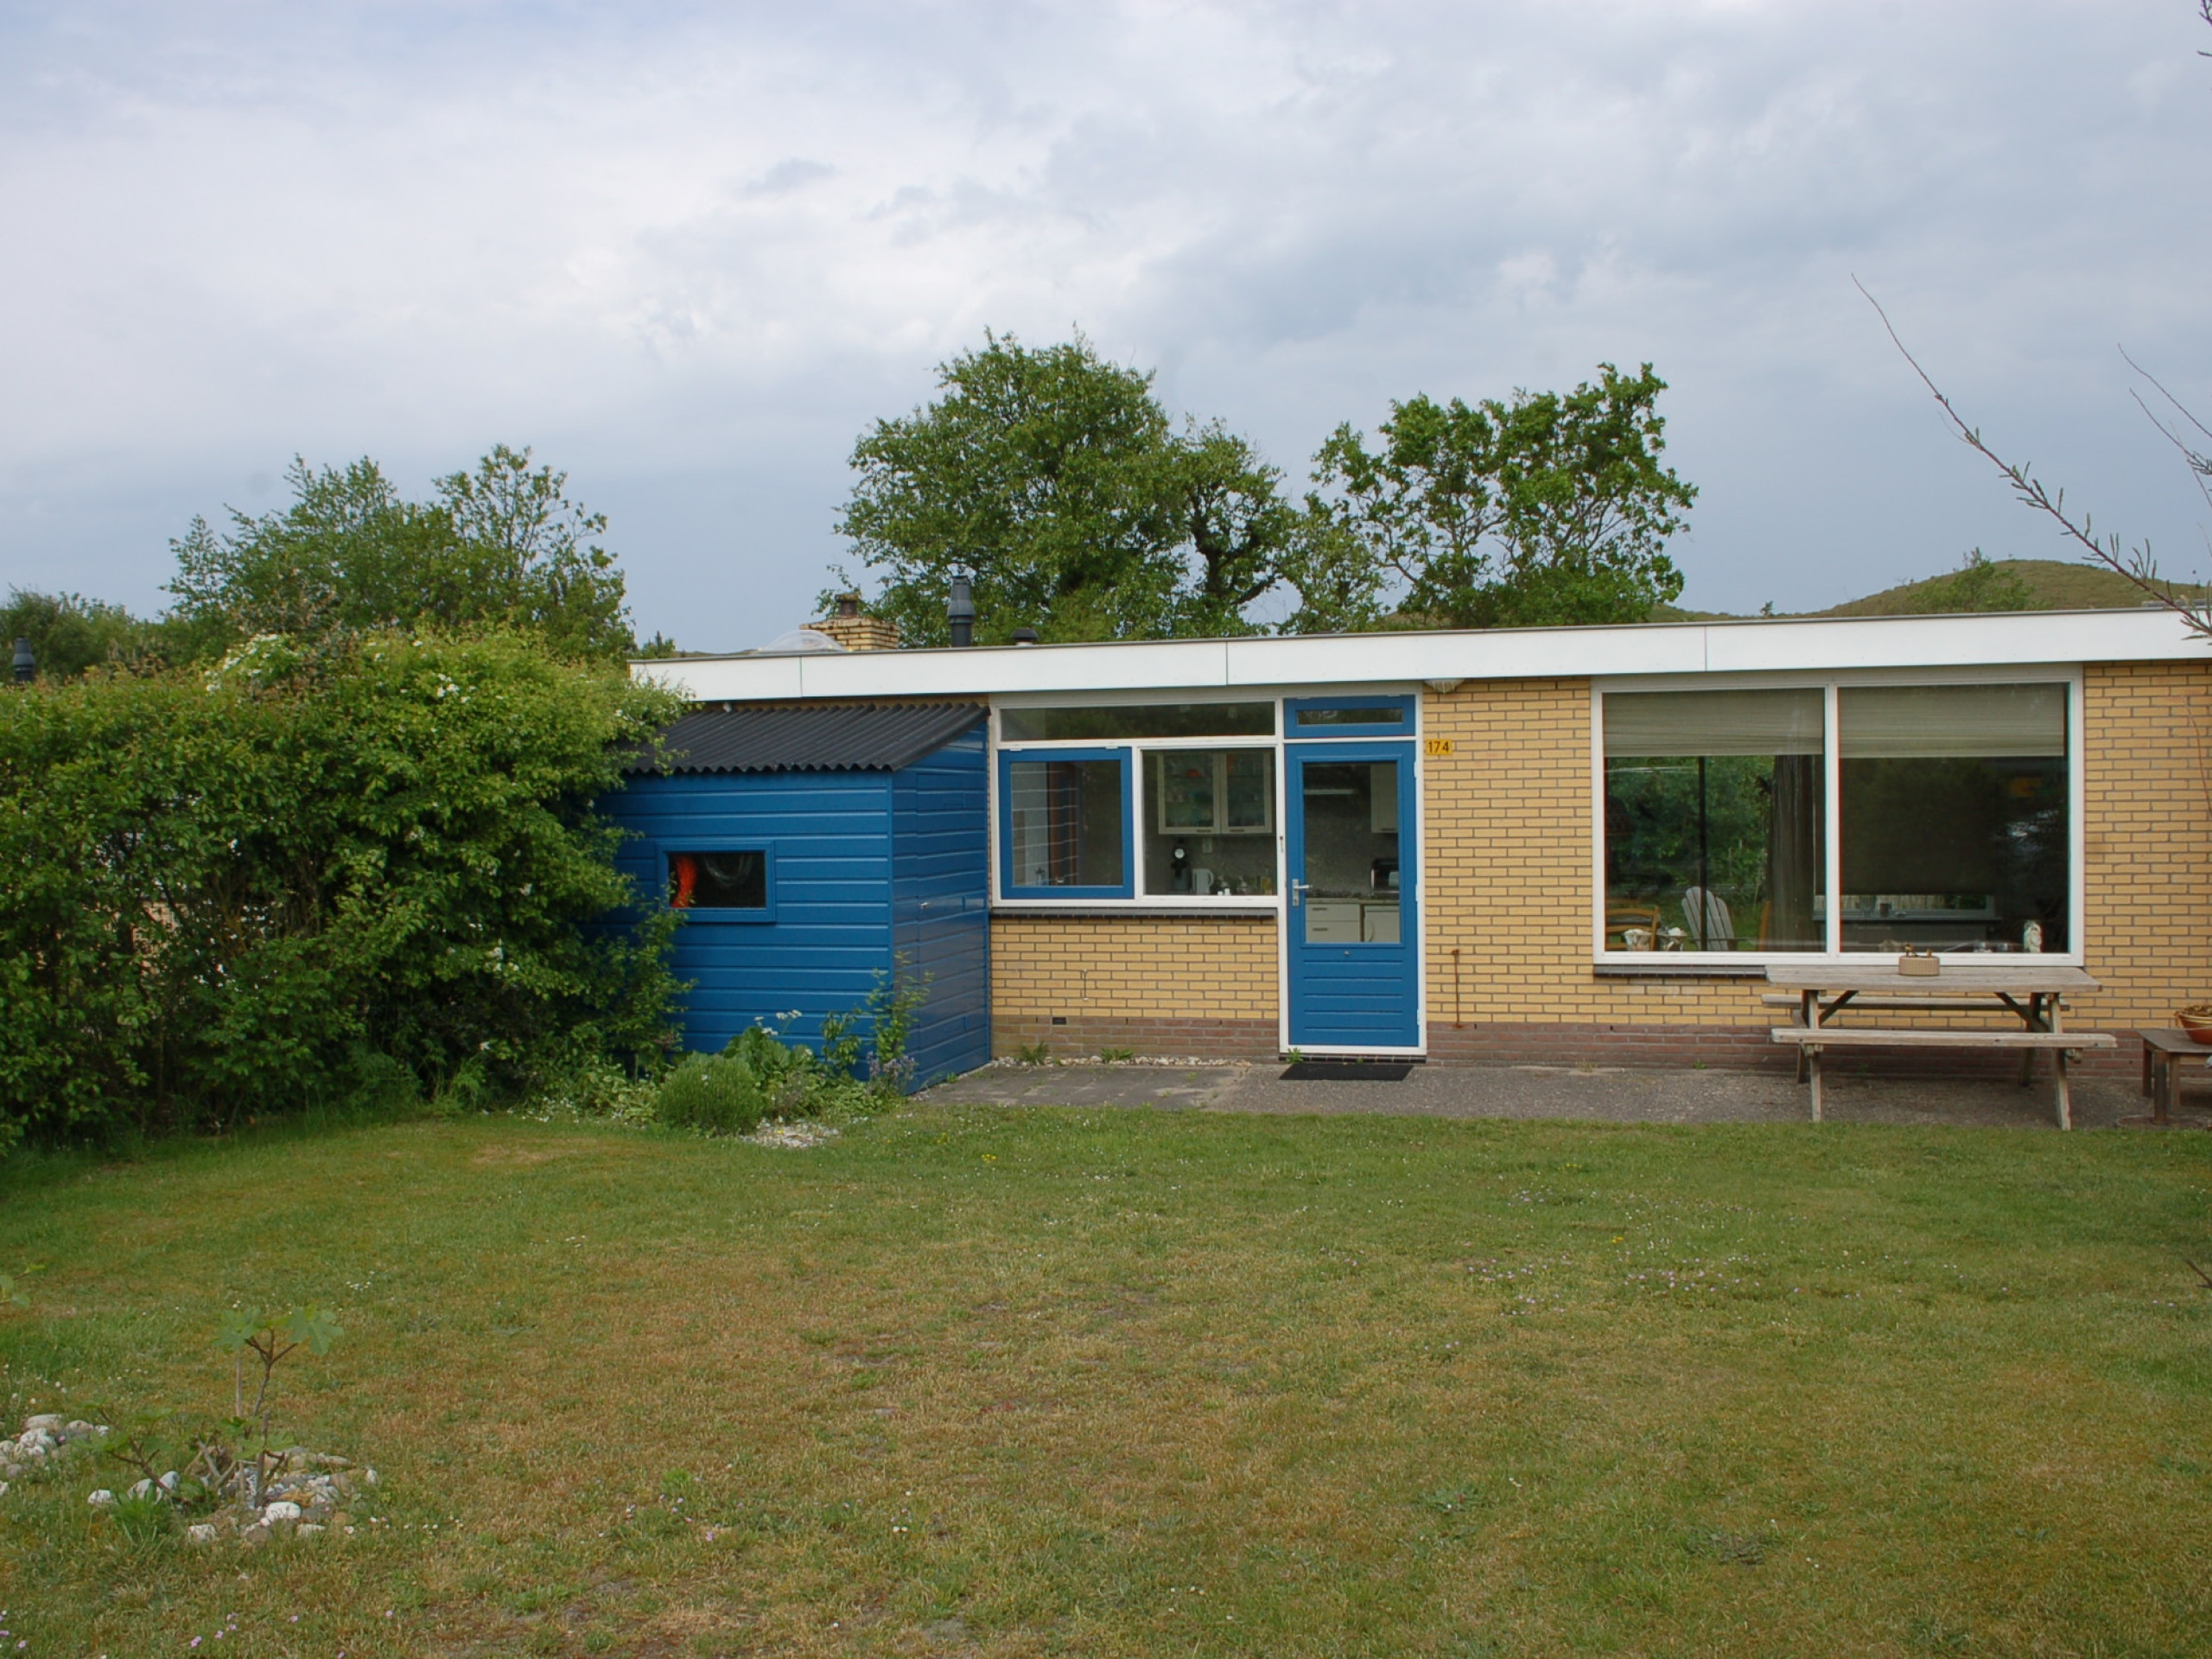 Celebrating holidays within walking distance of De Slufter in this fine bungalow